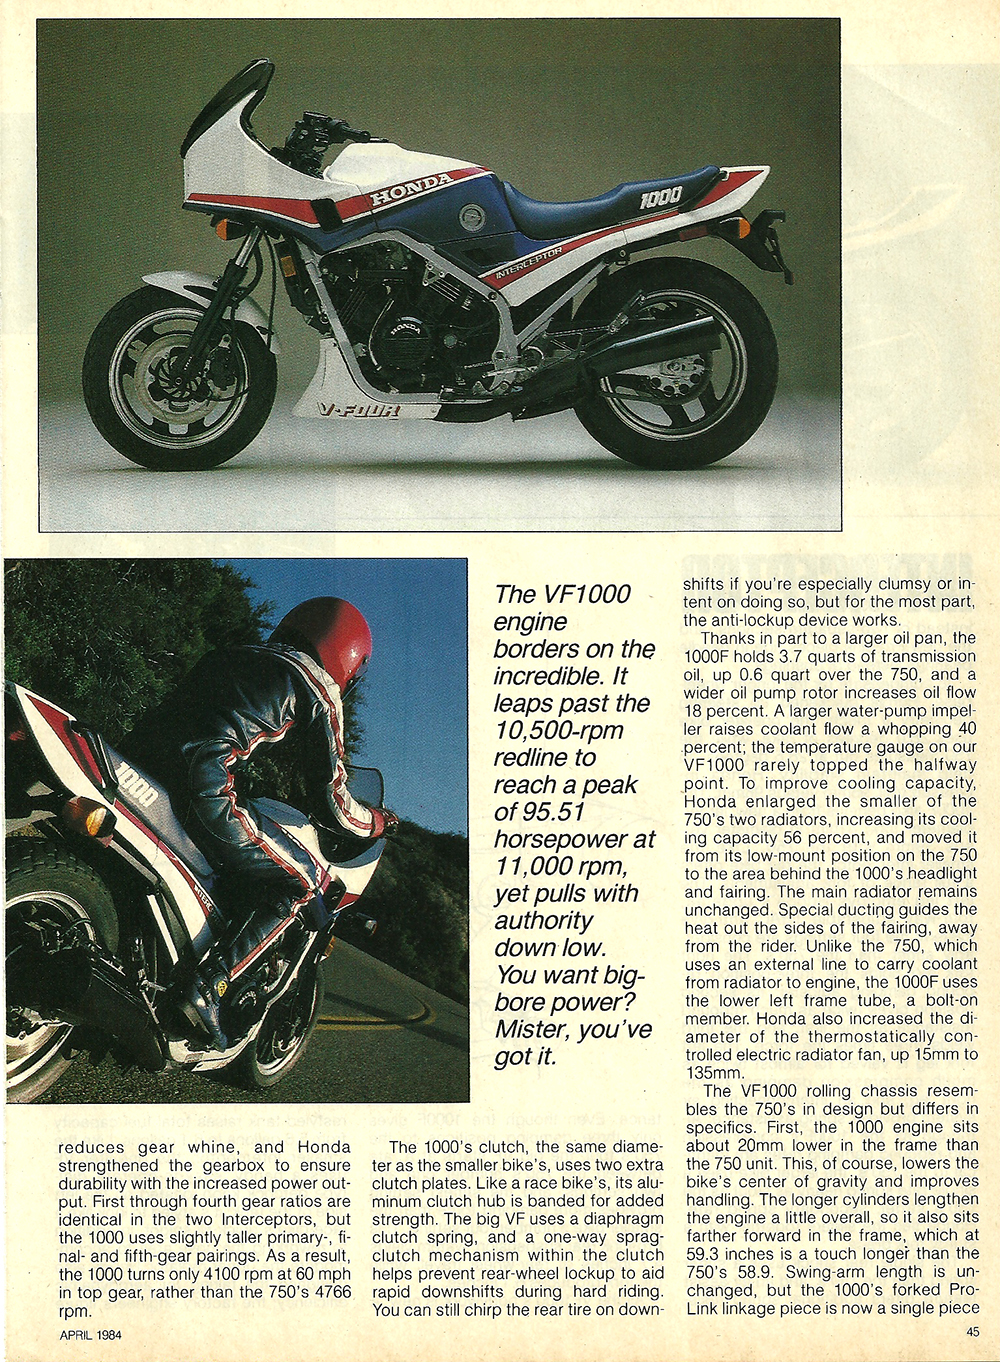 1984 Honda VF1000 Interceptor road test 4.jpg